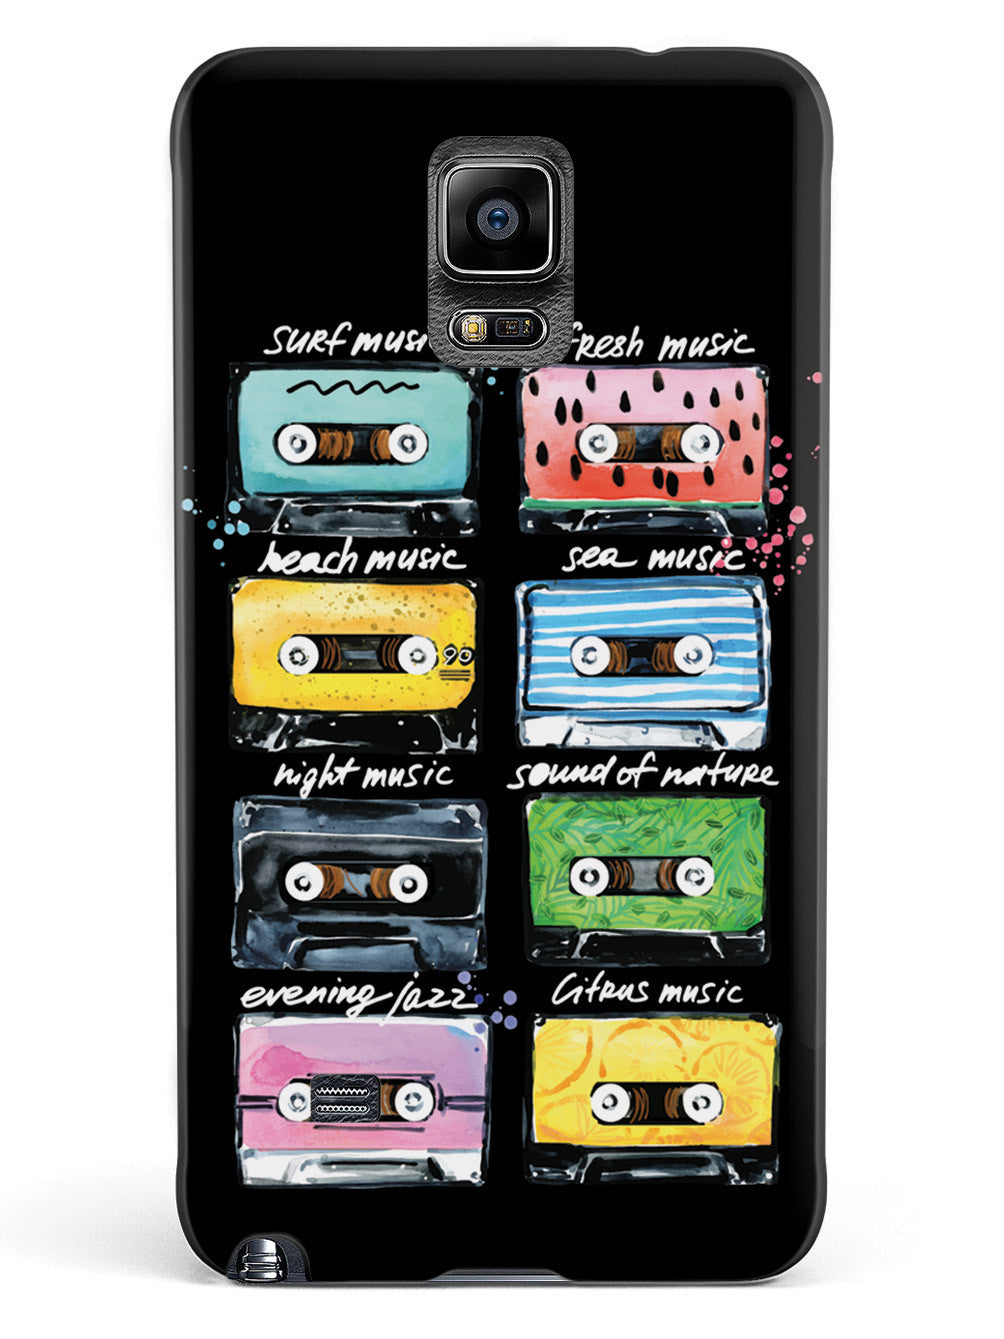 Cassette Tapes - Mood Music - Black Case